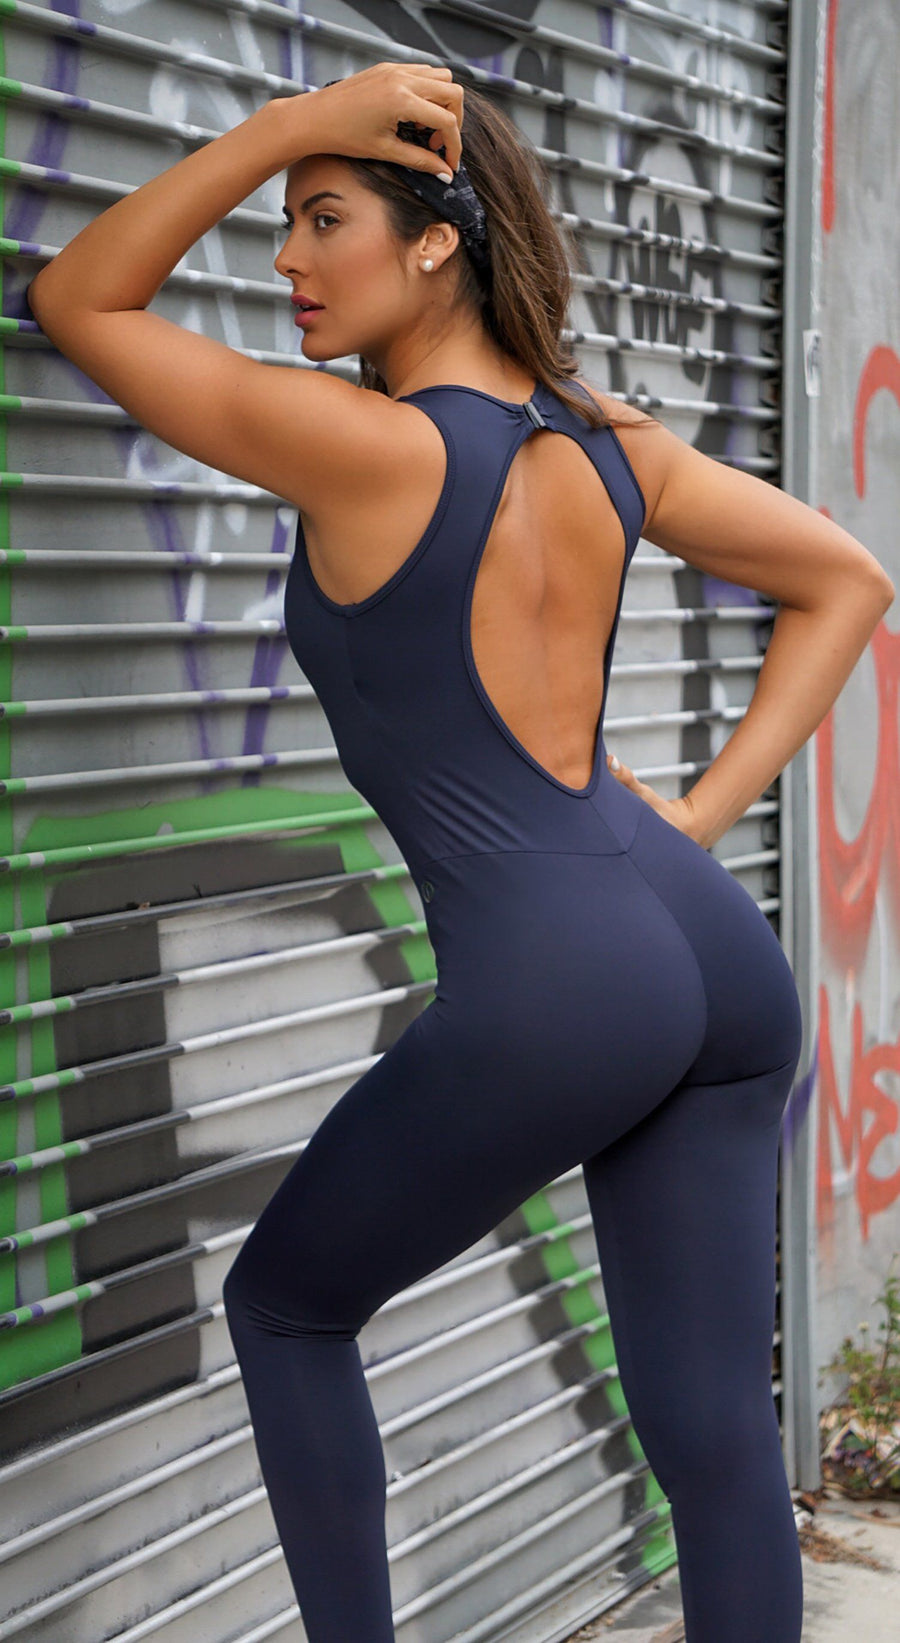 Brazilian Workout Jumpsuit - Ripped Navy Catsuit